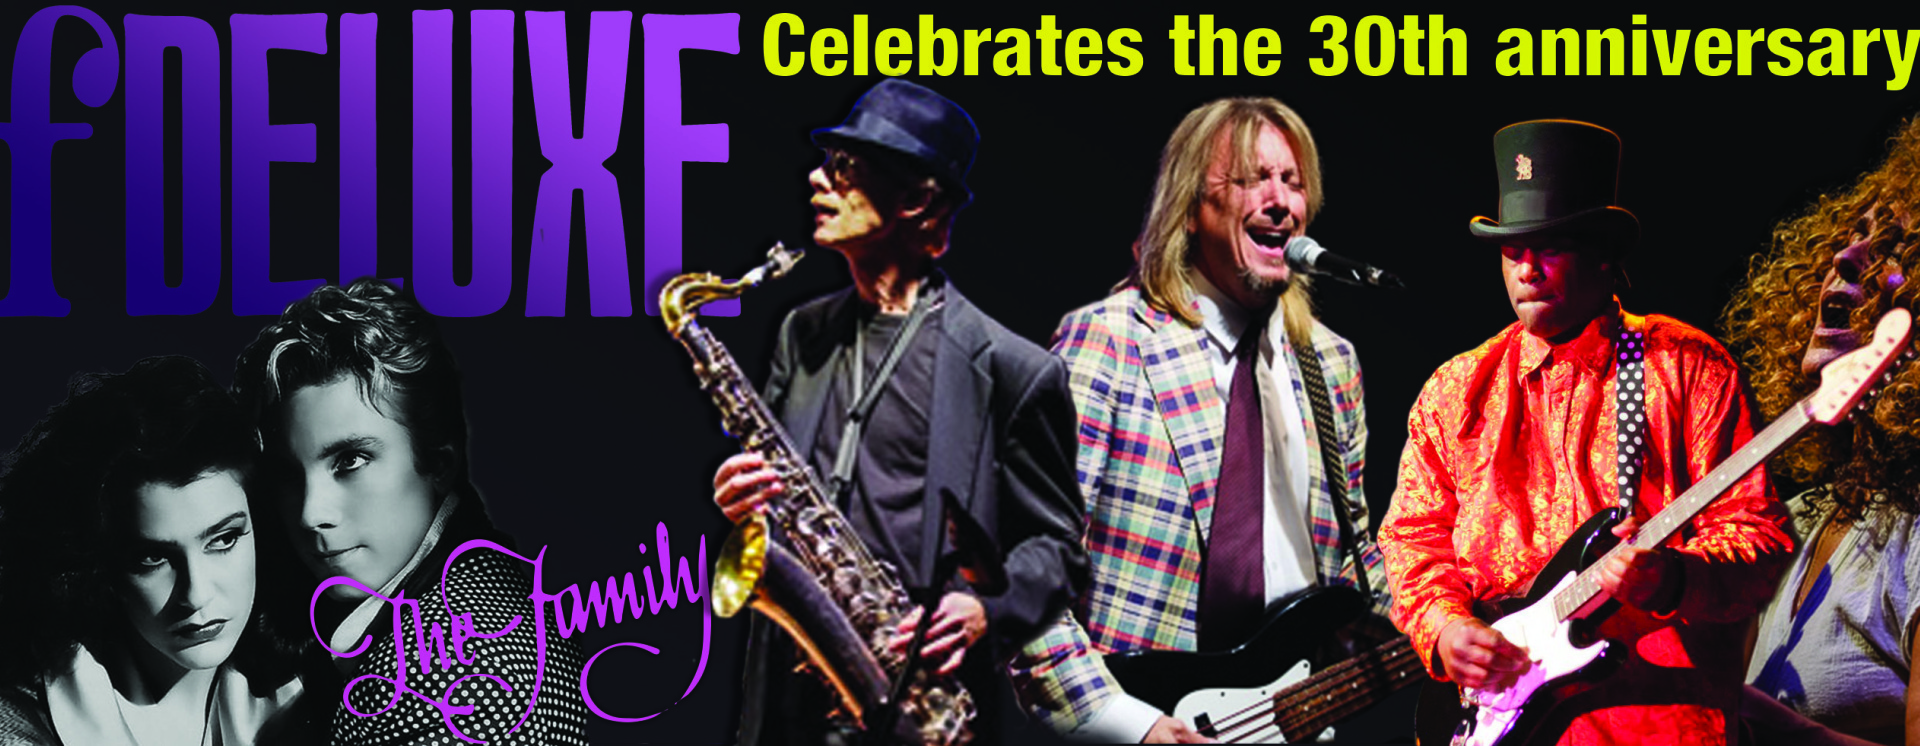 1429403217 fdeluxe reverbnation email banner 3 copy